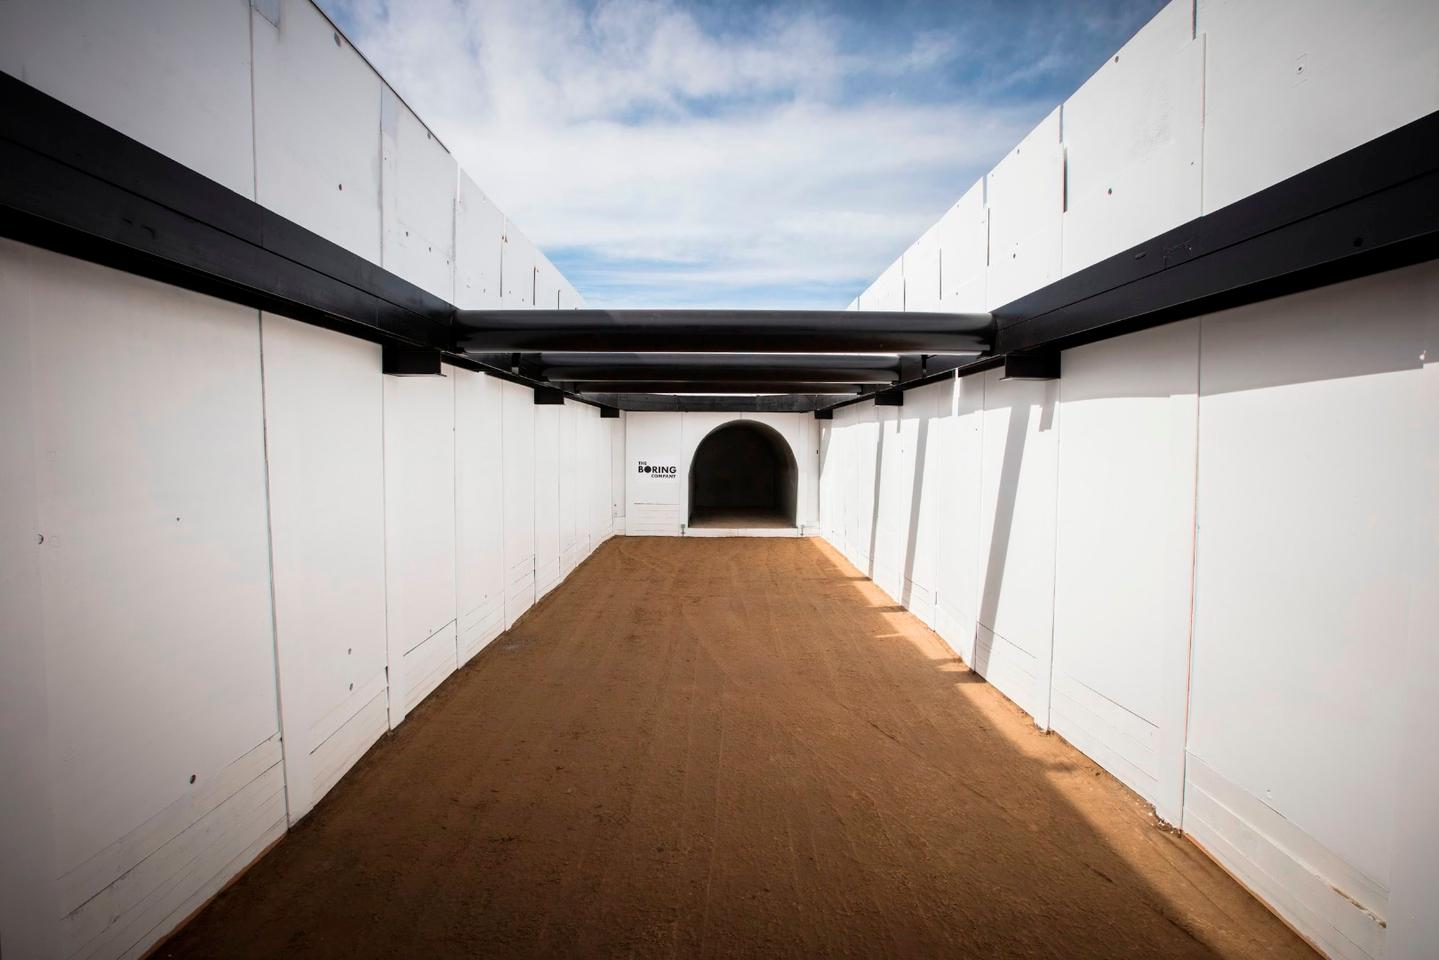 The Boring Company's very first demonstration tunnel is nearing completion